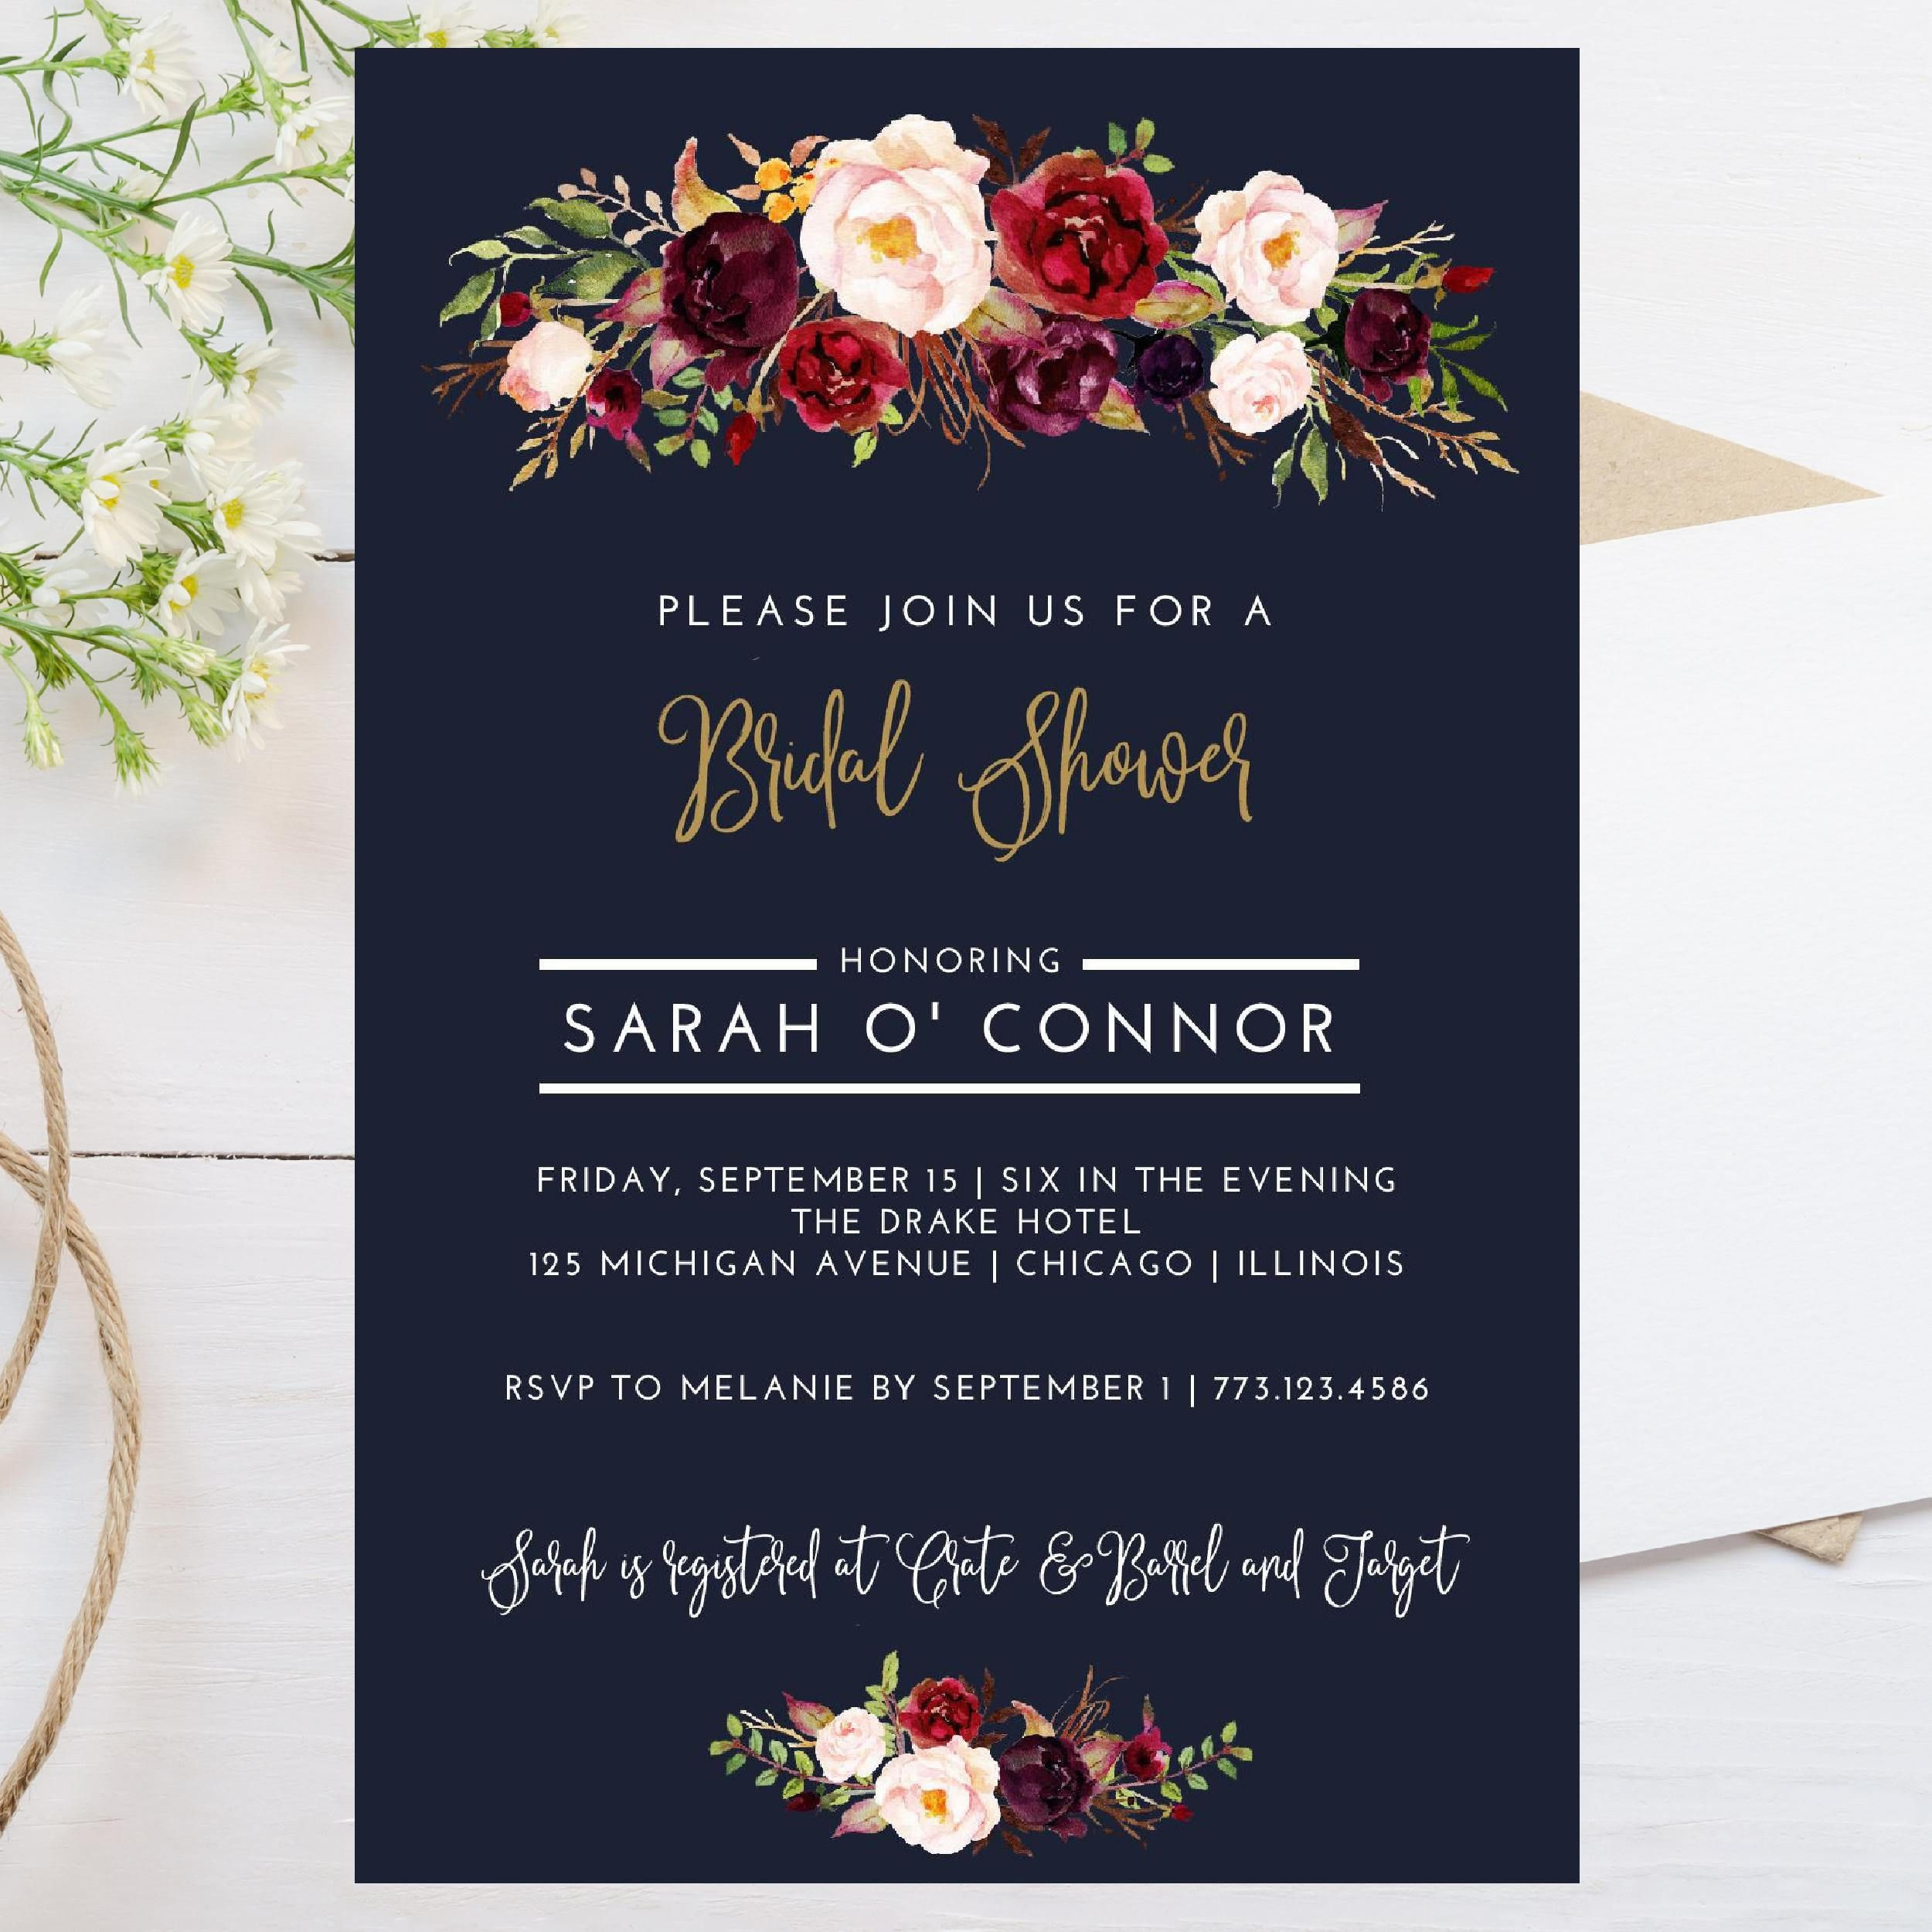 elegant environment publ pleasure including bridal ctures ma of invitations cd with outstanding shower templates invitation np full for source